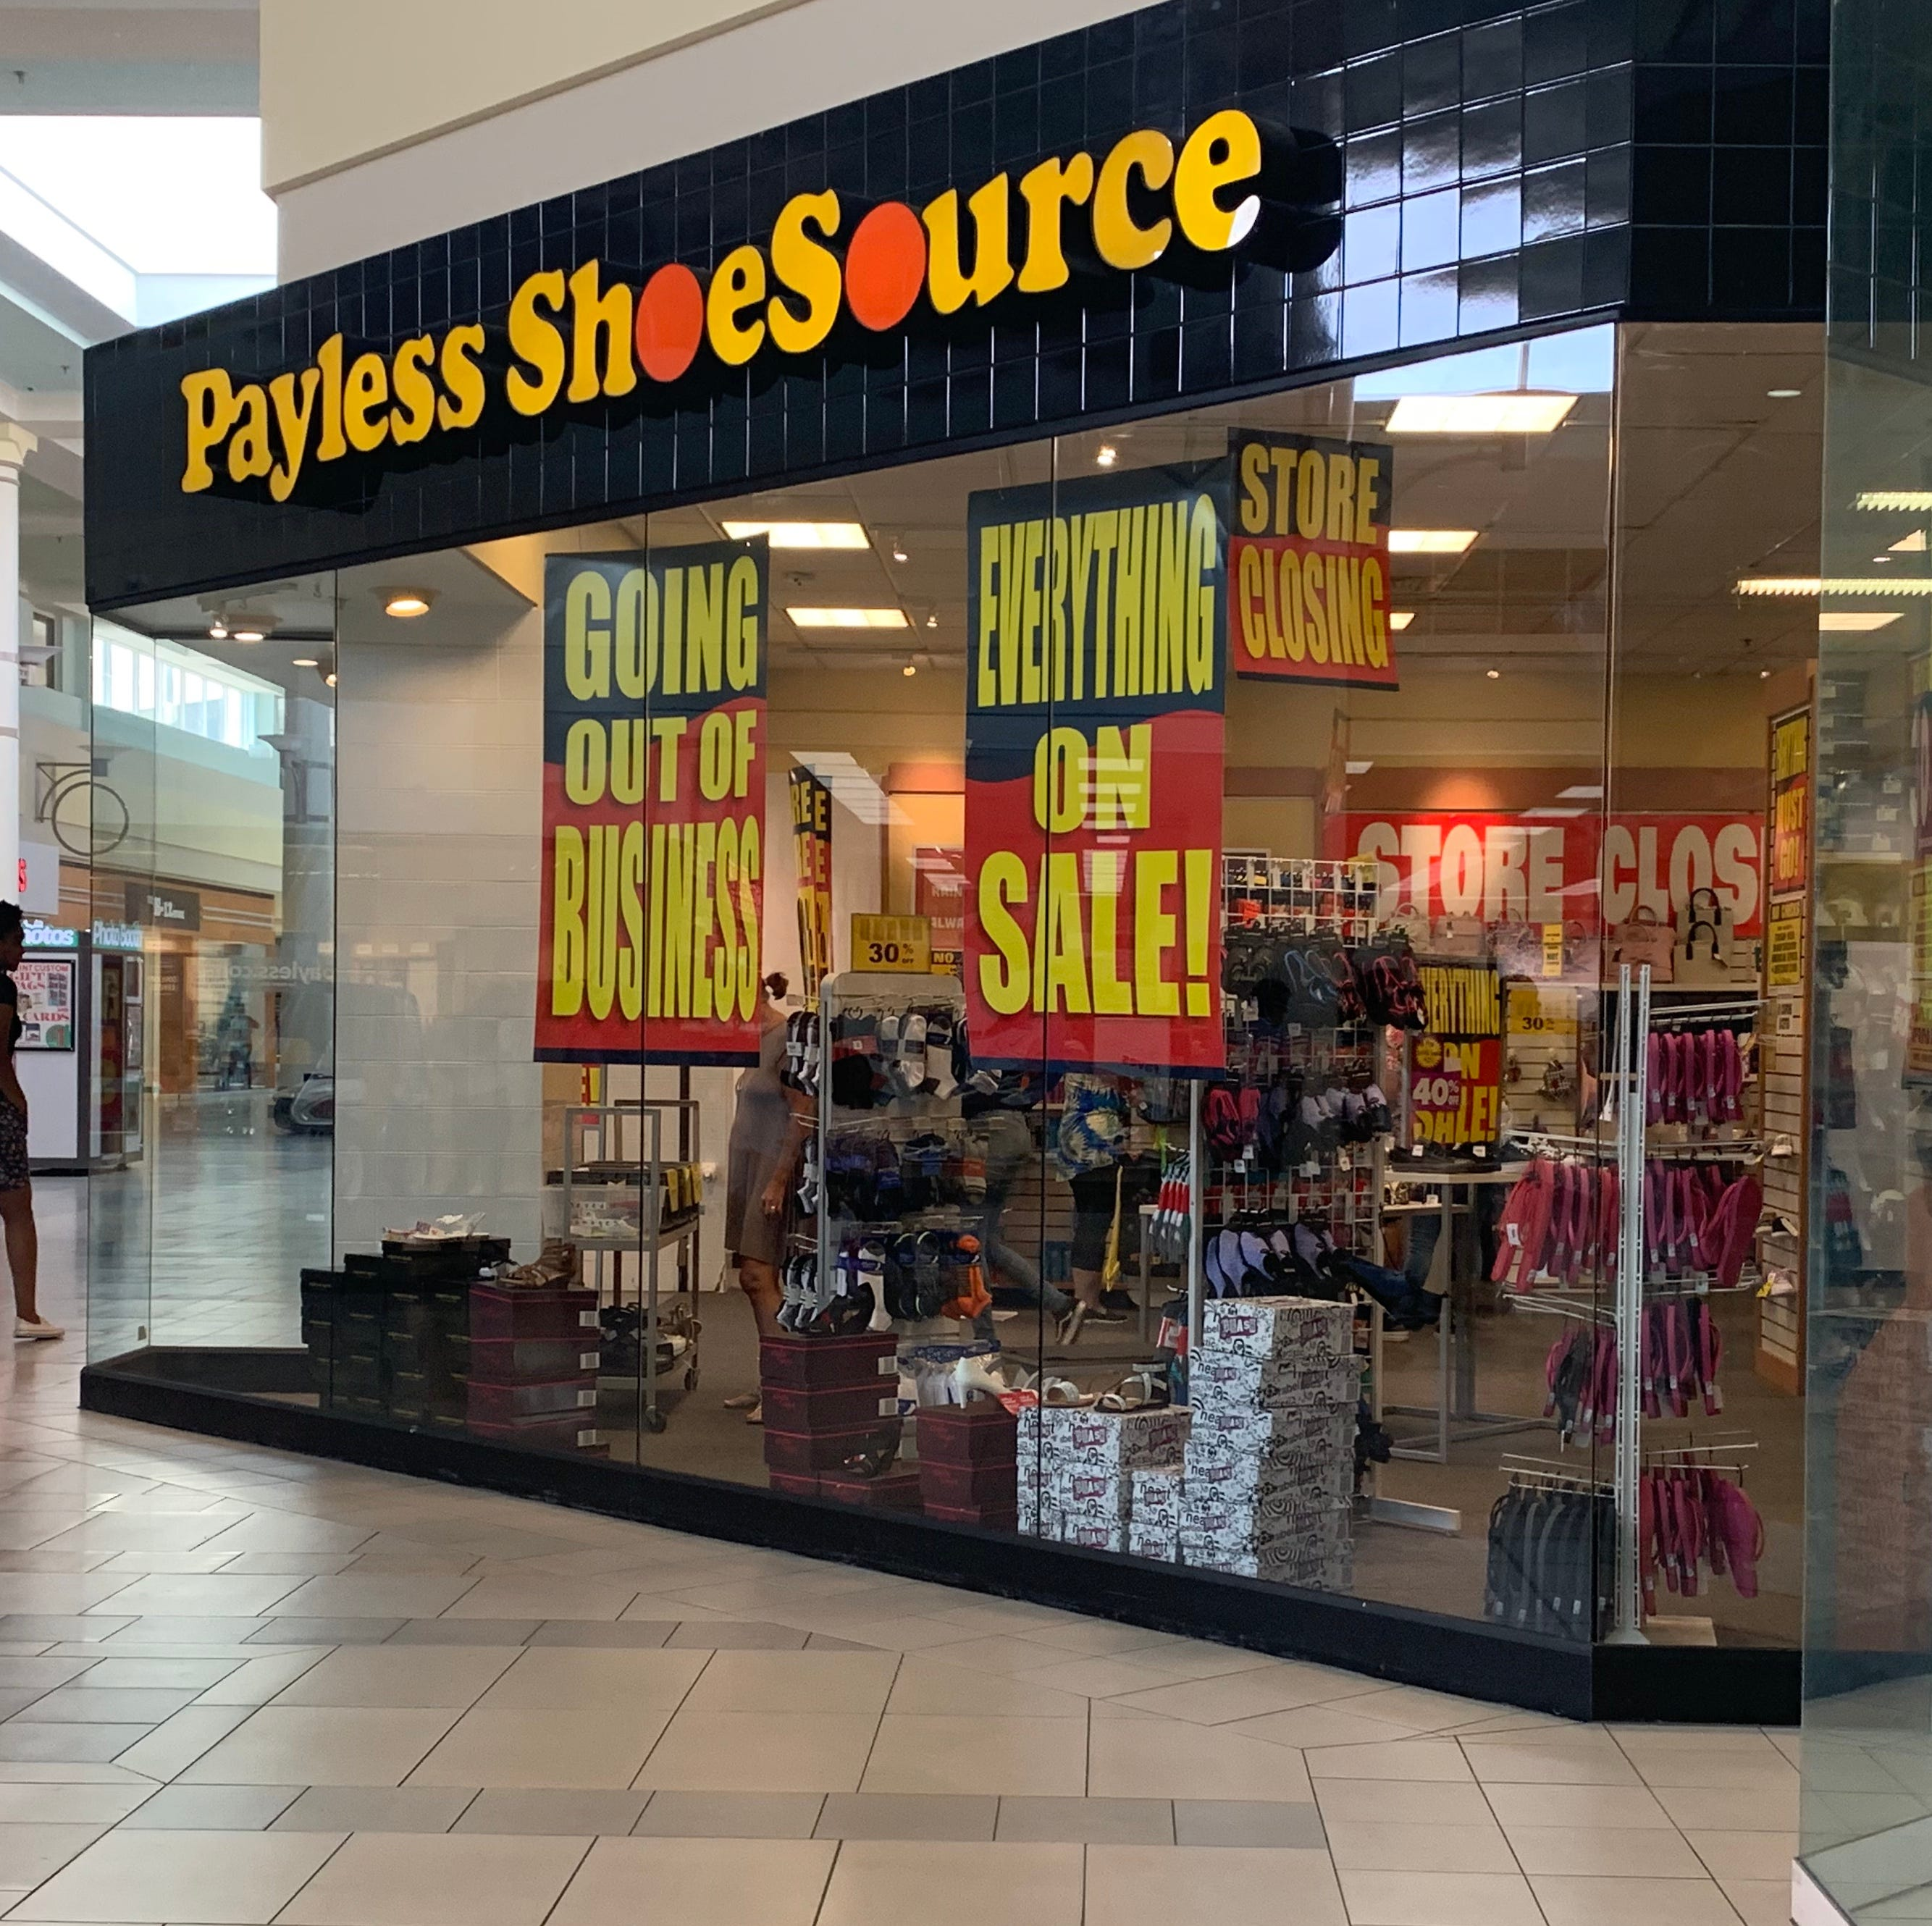 All Payless Shoes, Dressbarn locations closing soon in Evansville